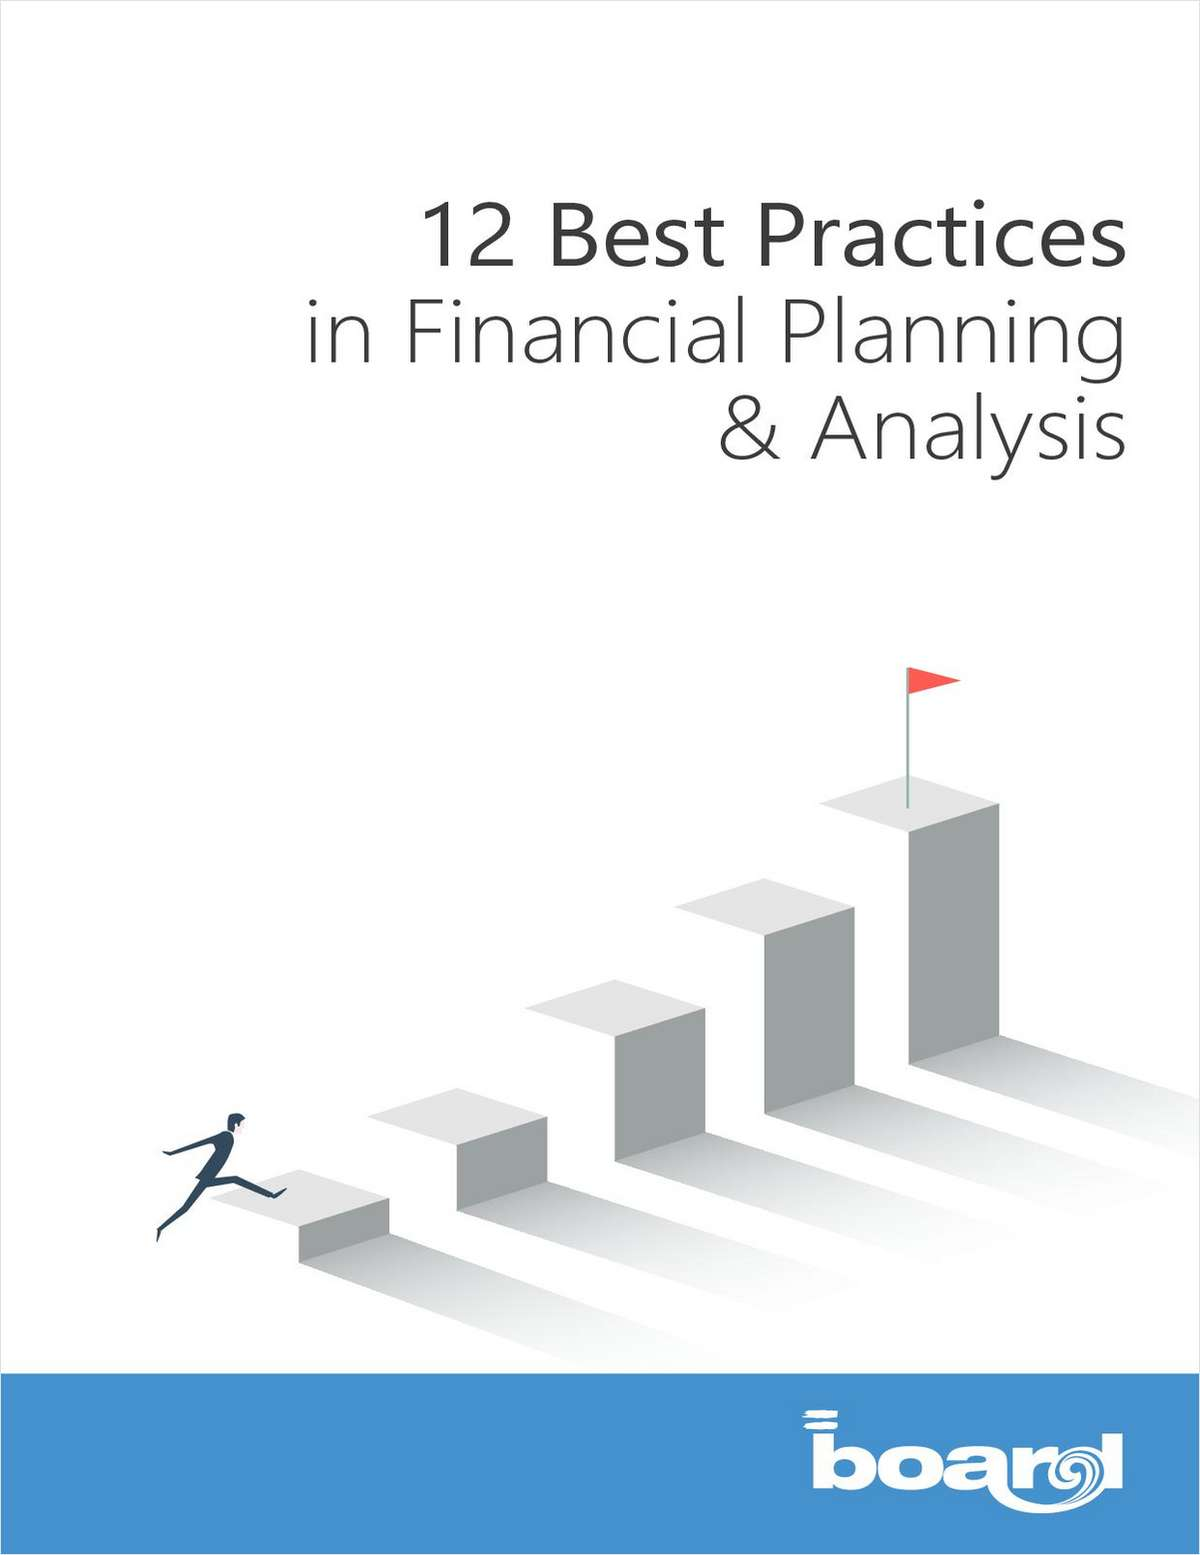 12 Best Practices in Financial Planning & Analysis